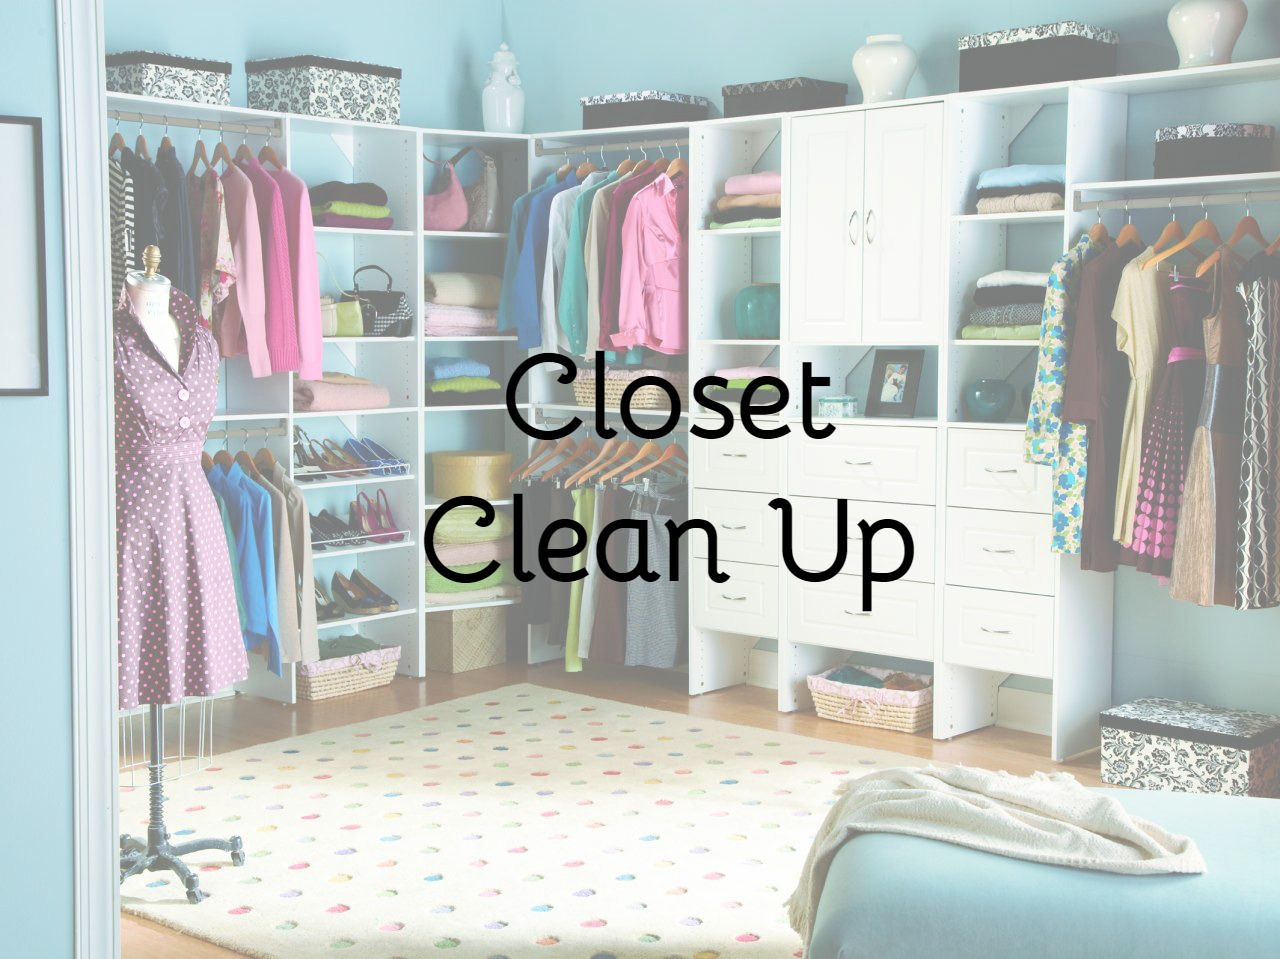 How to do an awesome closet clean up